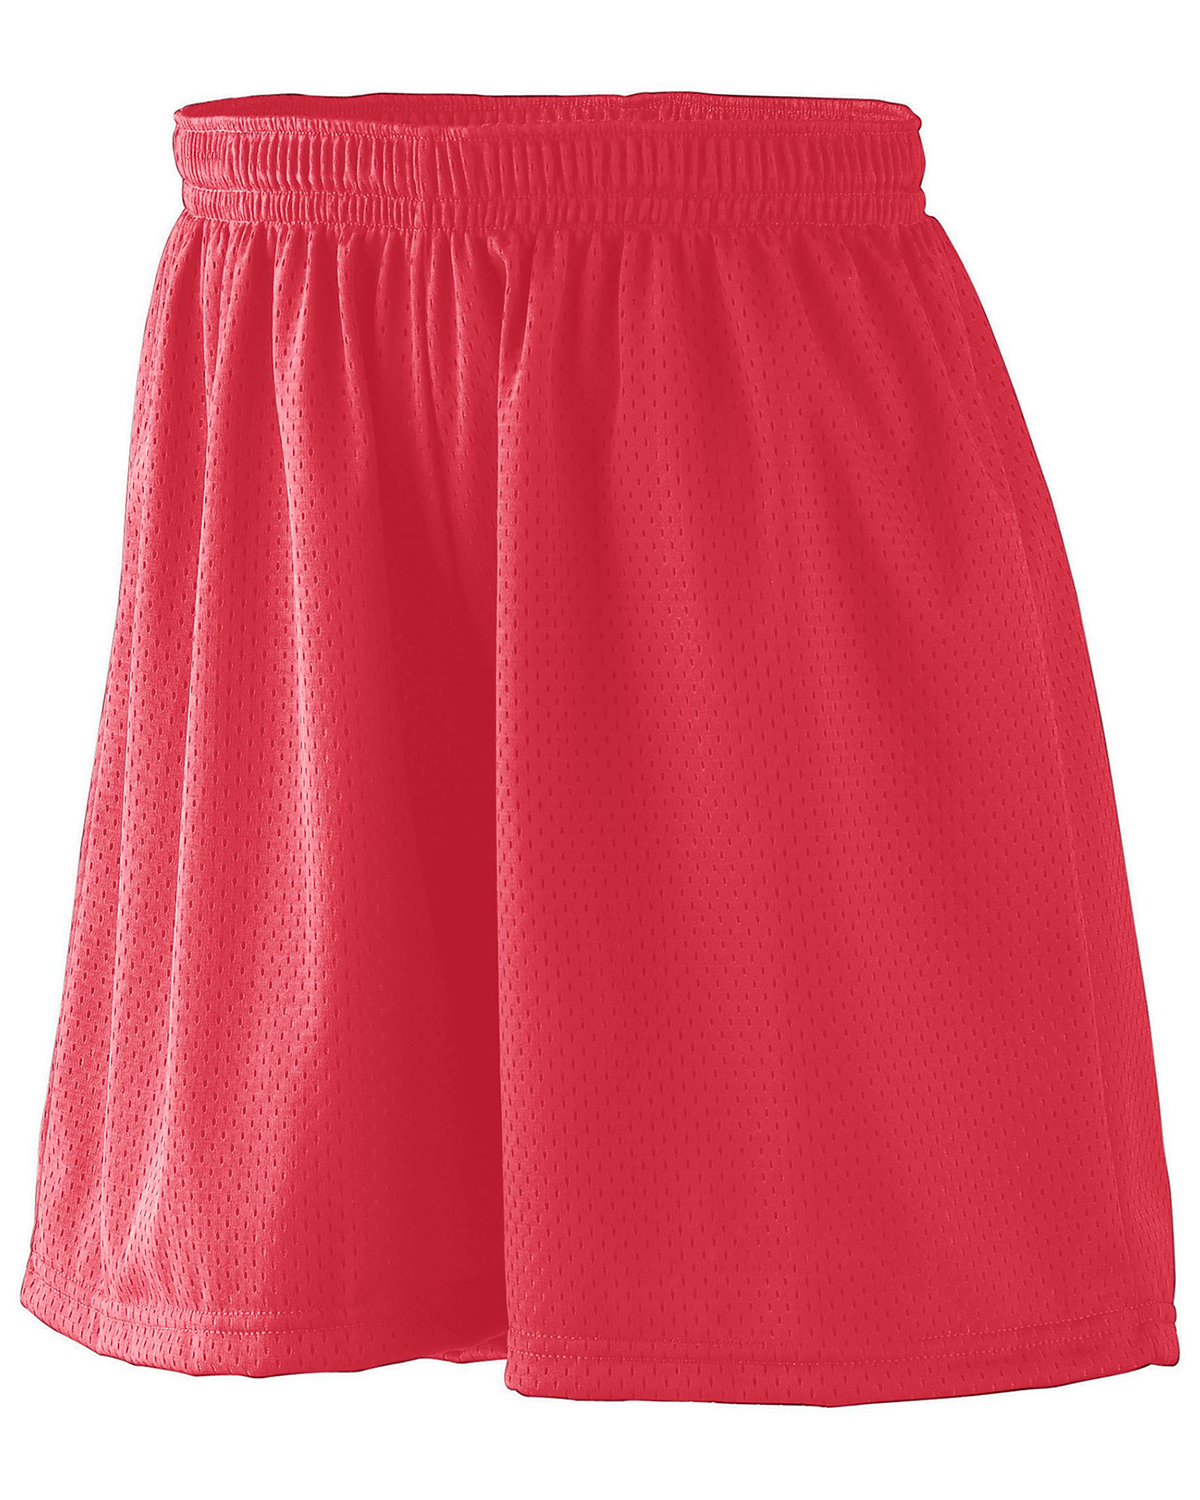 Augusta 859 Girls Tricot Mesh/Lined Training Short With Drawcord at GotApparel